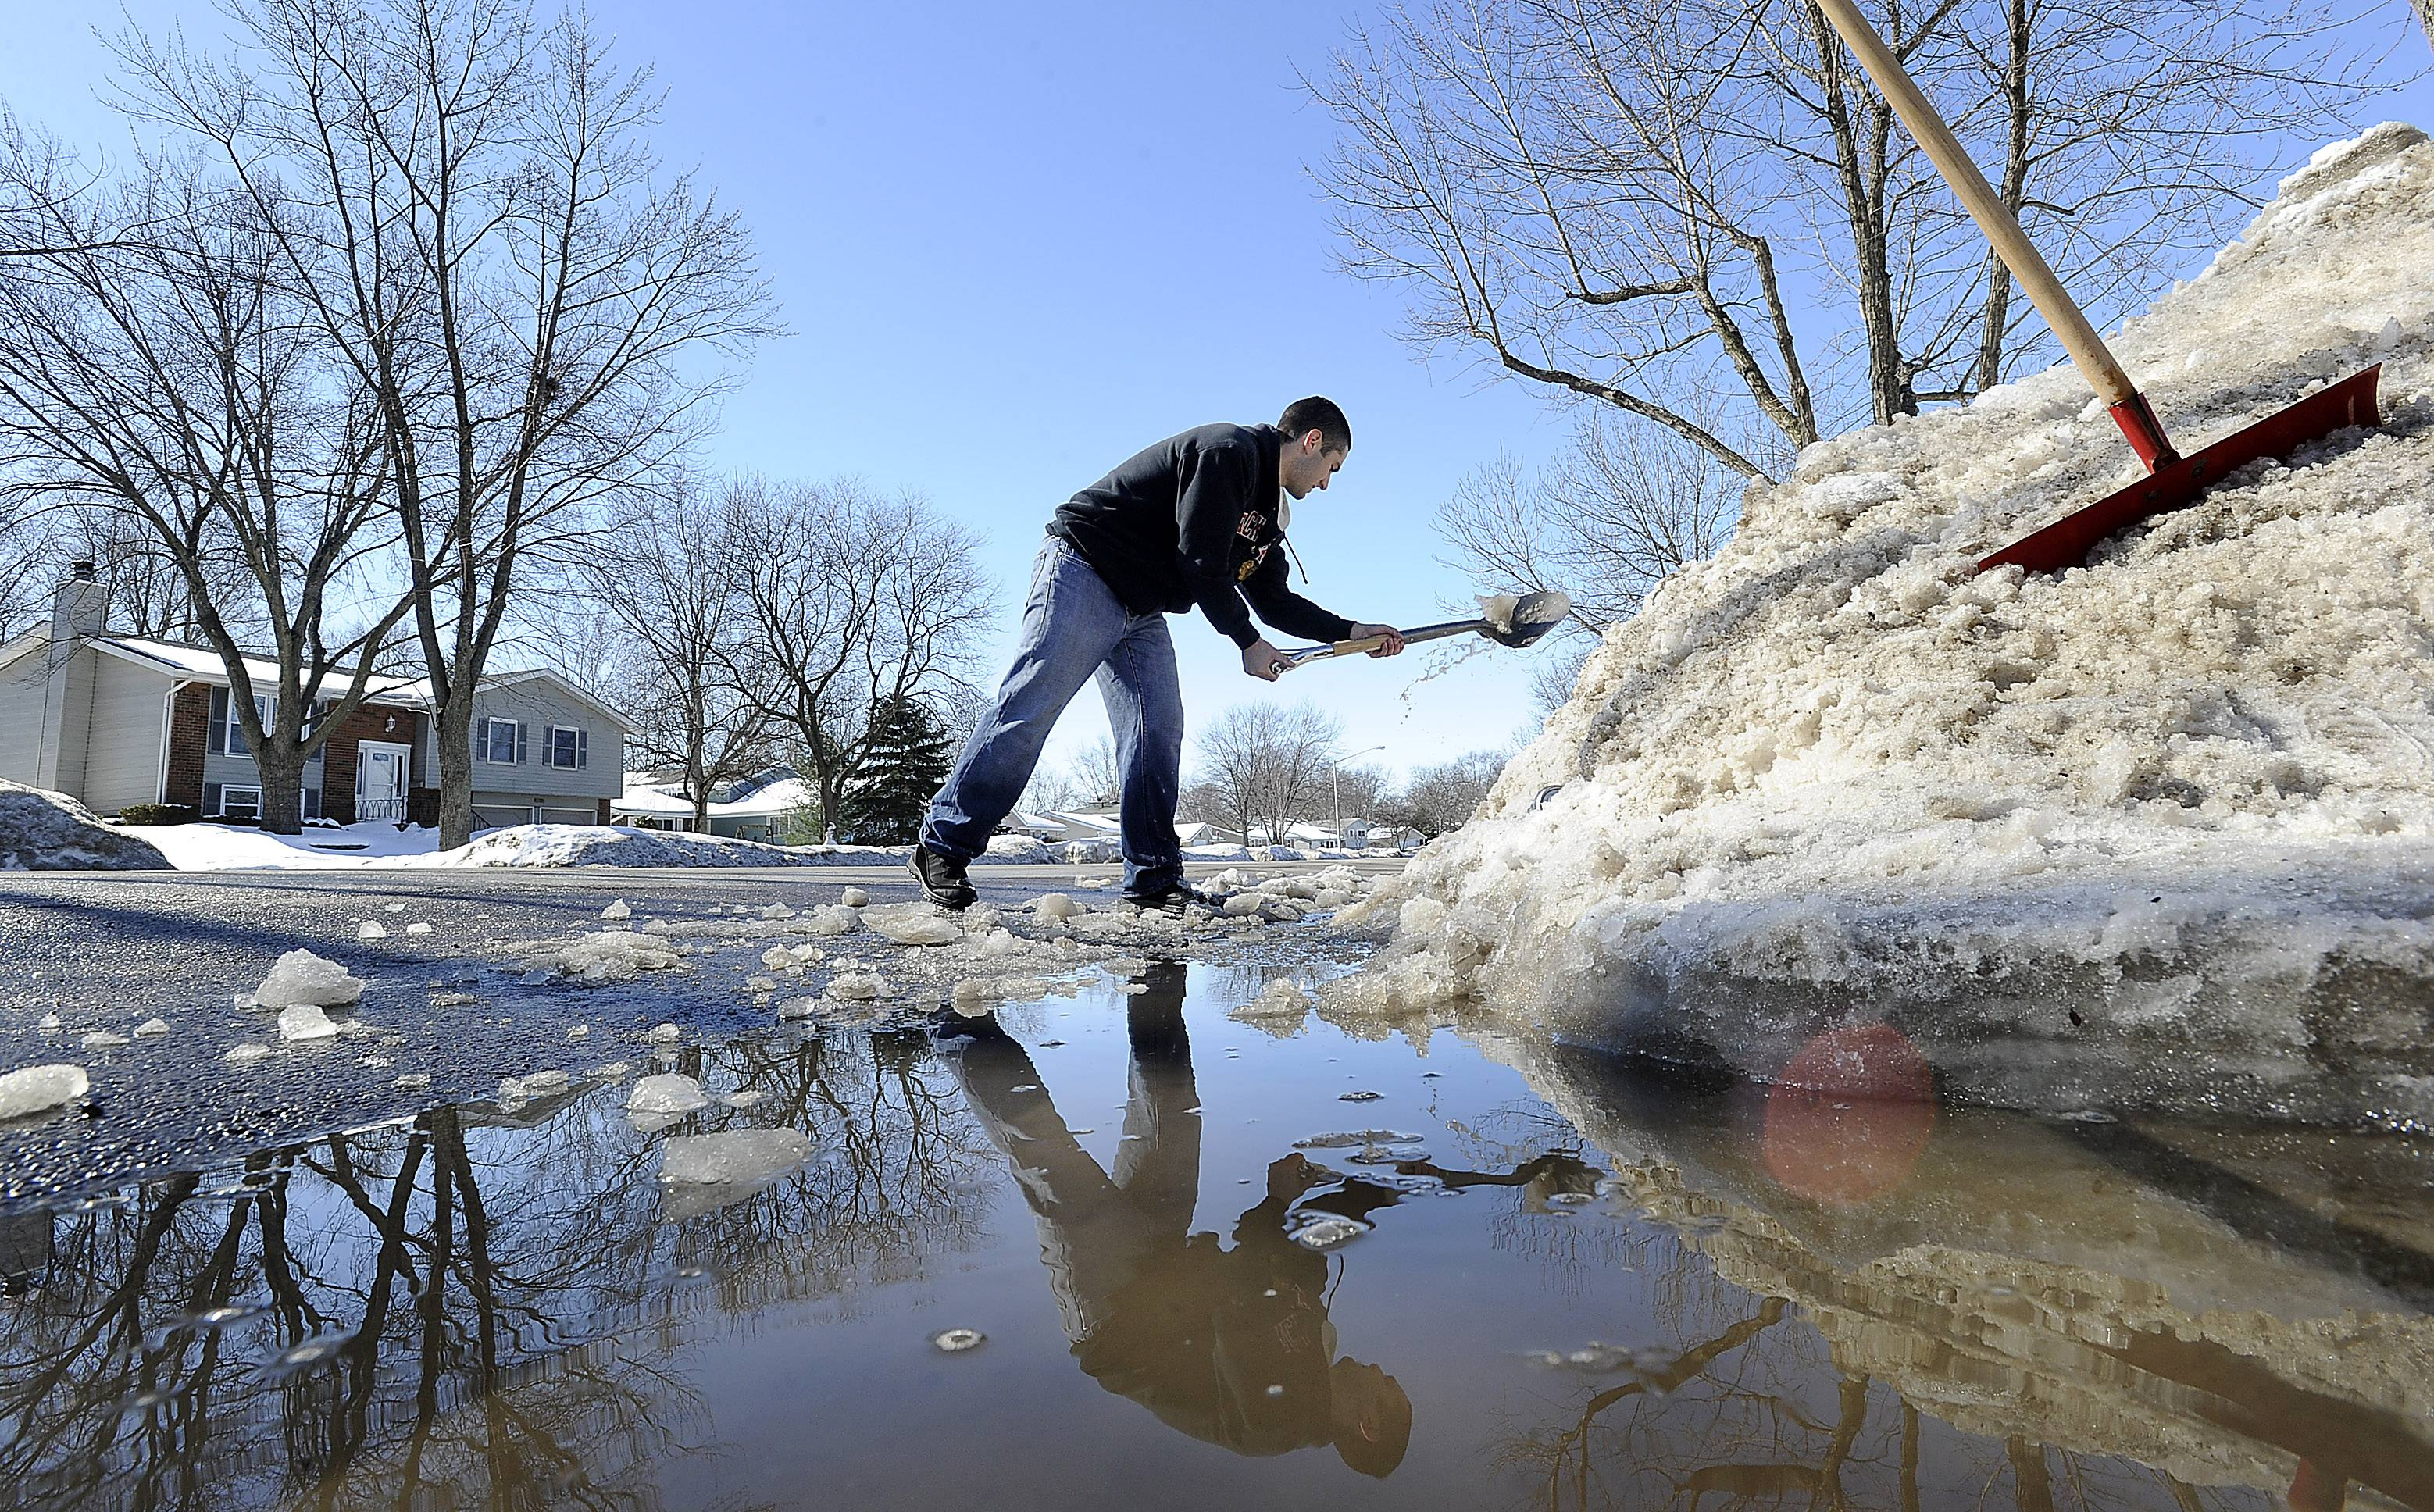 Worried about water that was accumulating, Mike Hamlin, 26, of Schaumburg spent two hours Wednesday uncovering a sewer grate and clearing out the ice and snow where his driveway meets the street so that water from the melt would flow away.